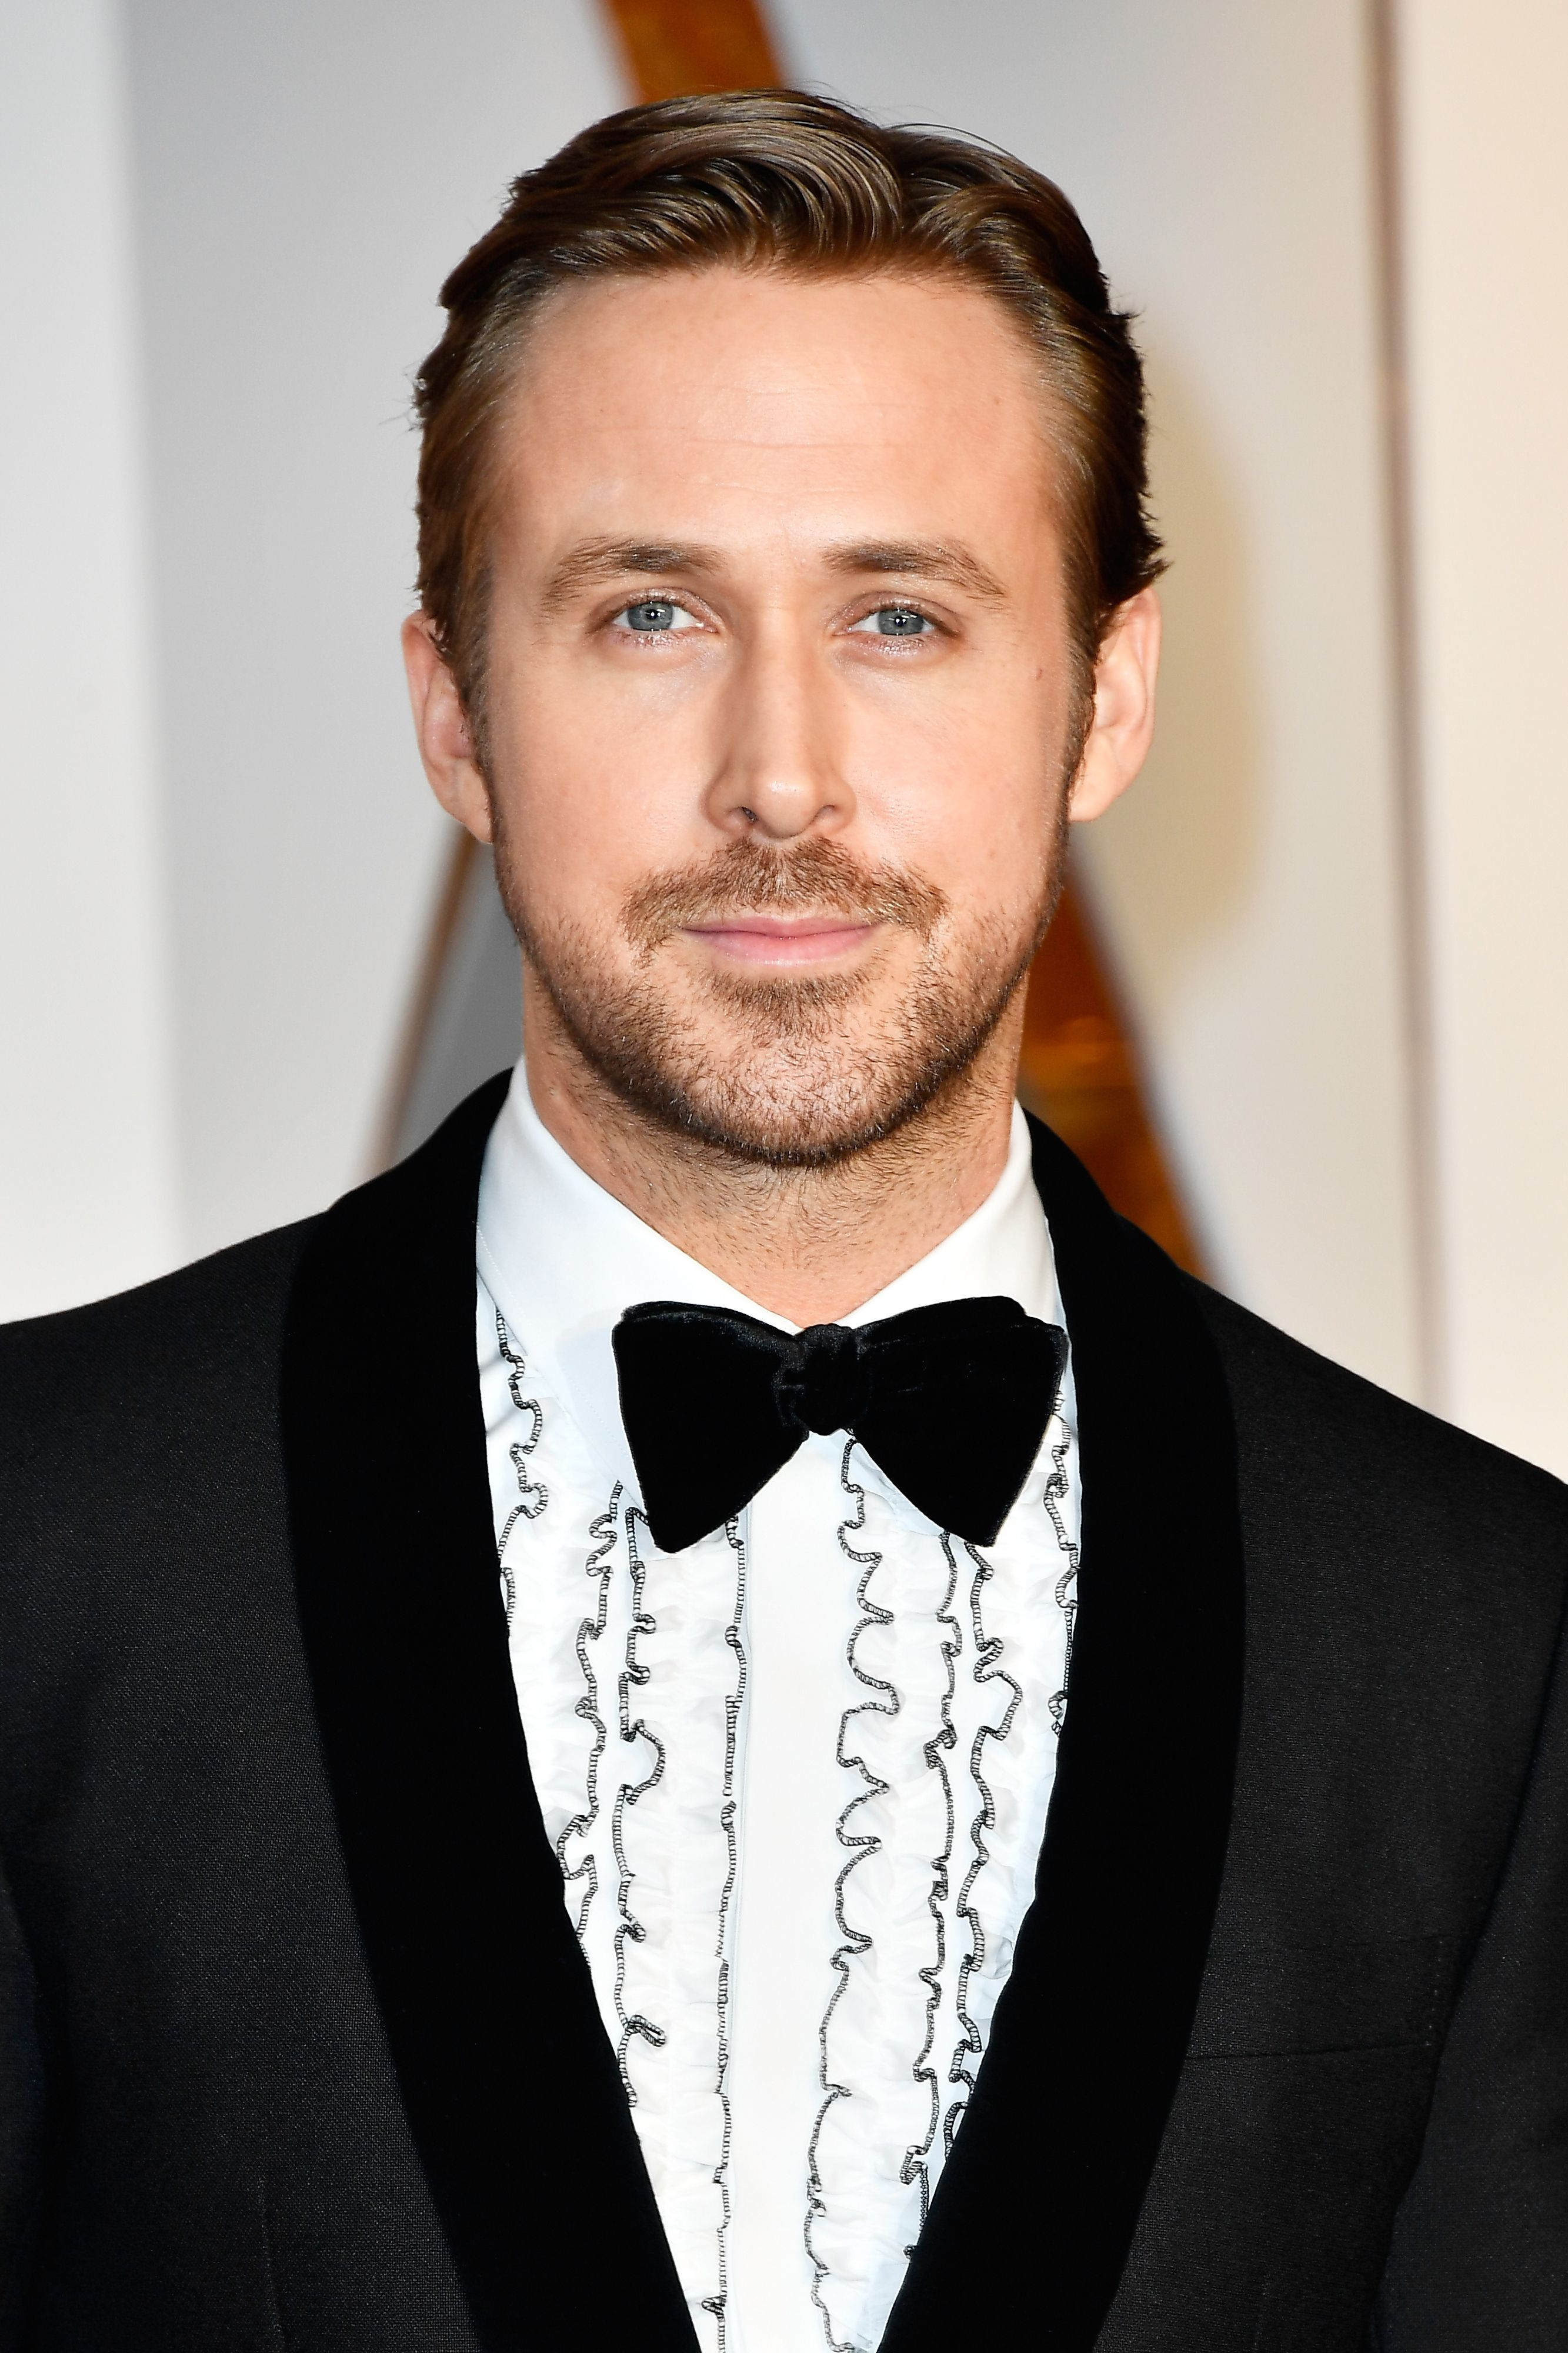 What Is Ryan Gosling's Net Worth?